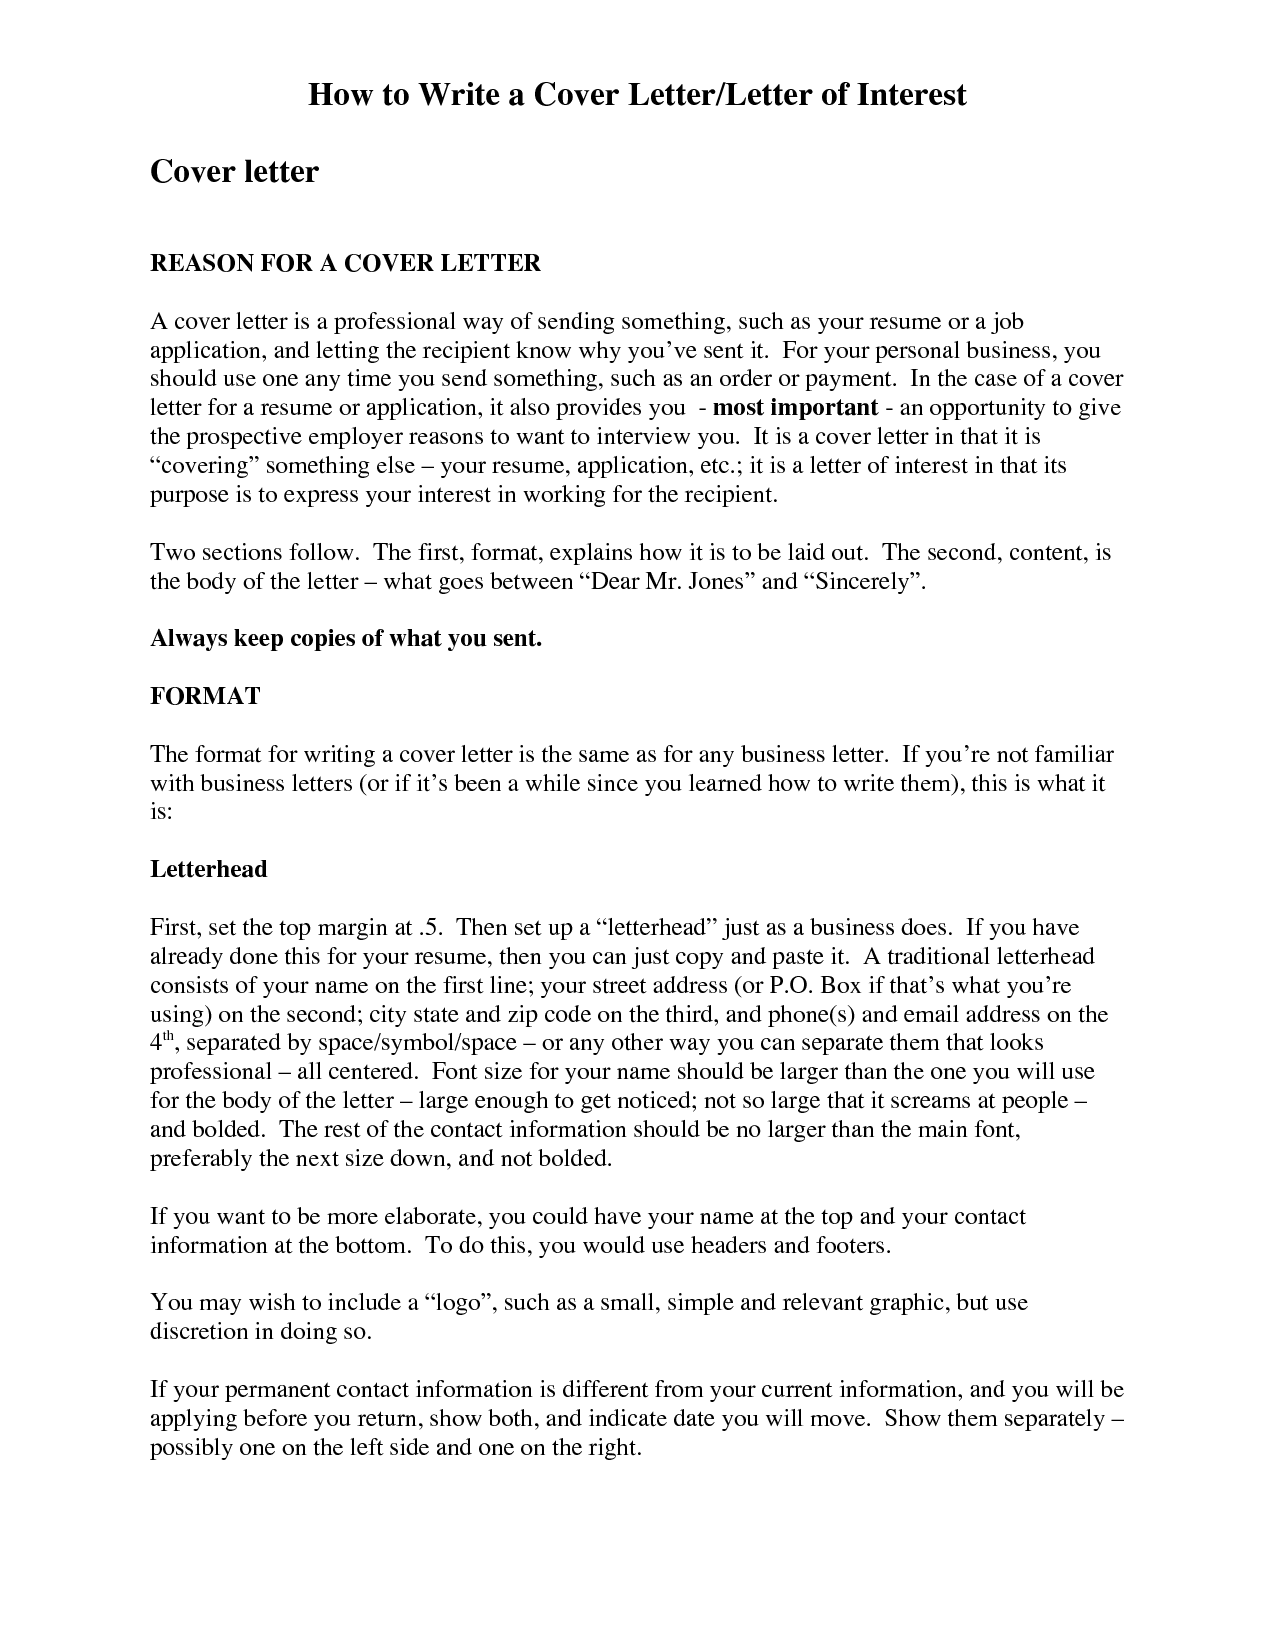 Letters of interest examples for a job letter of intent for Writing a cover letter for a management position